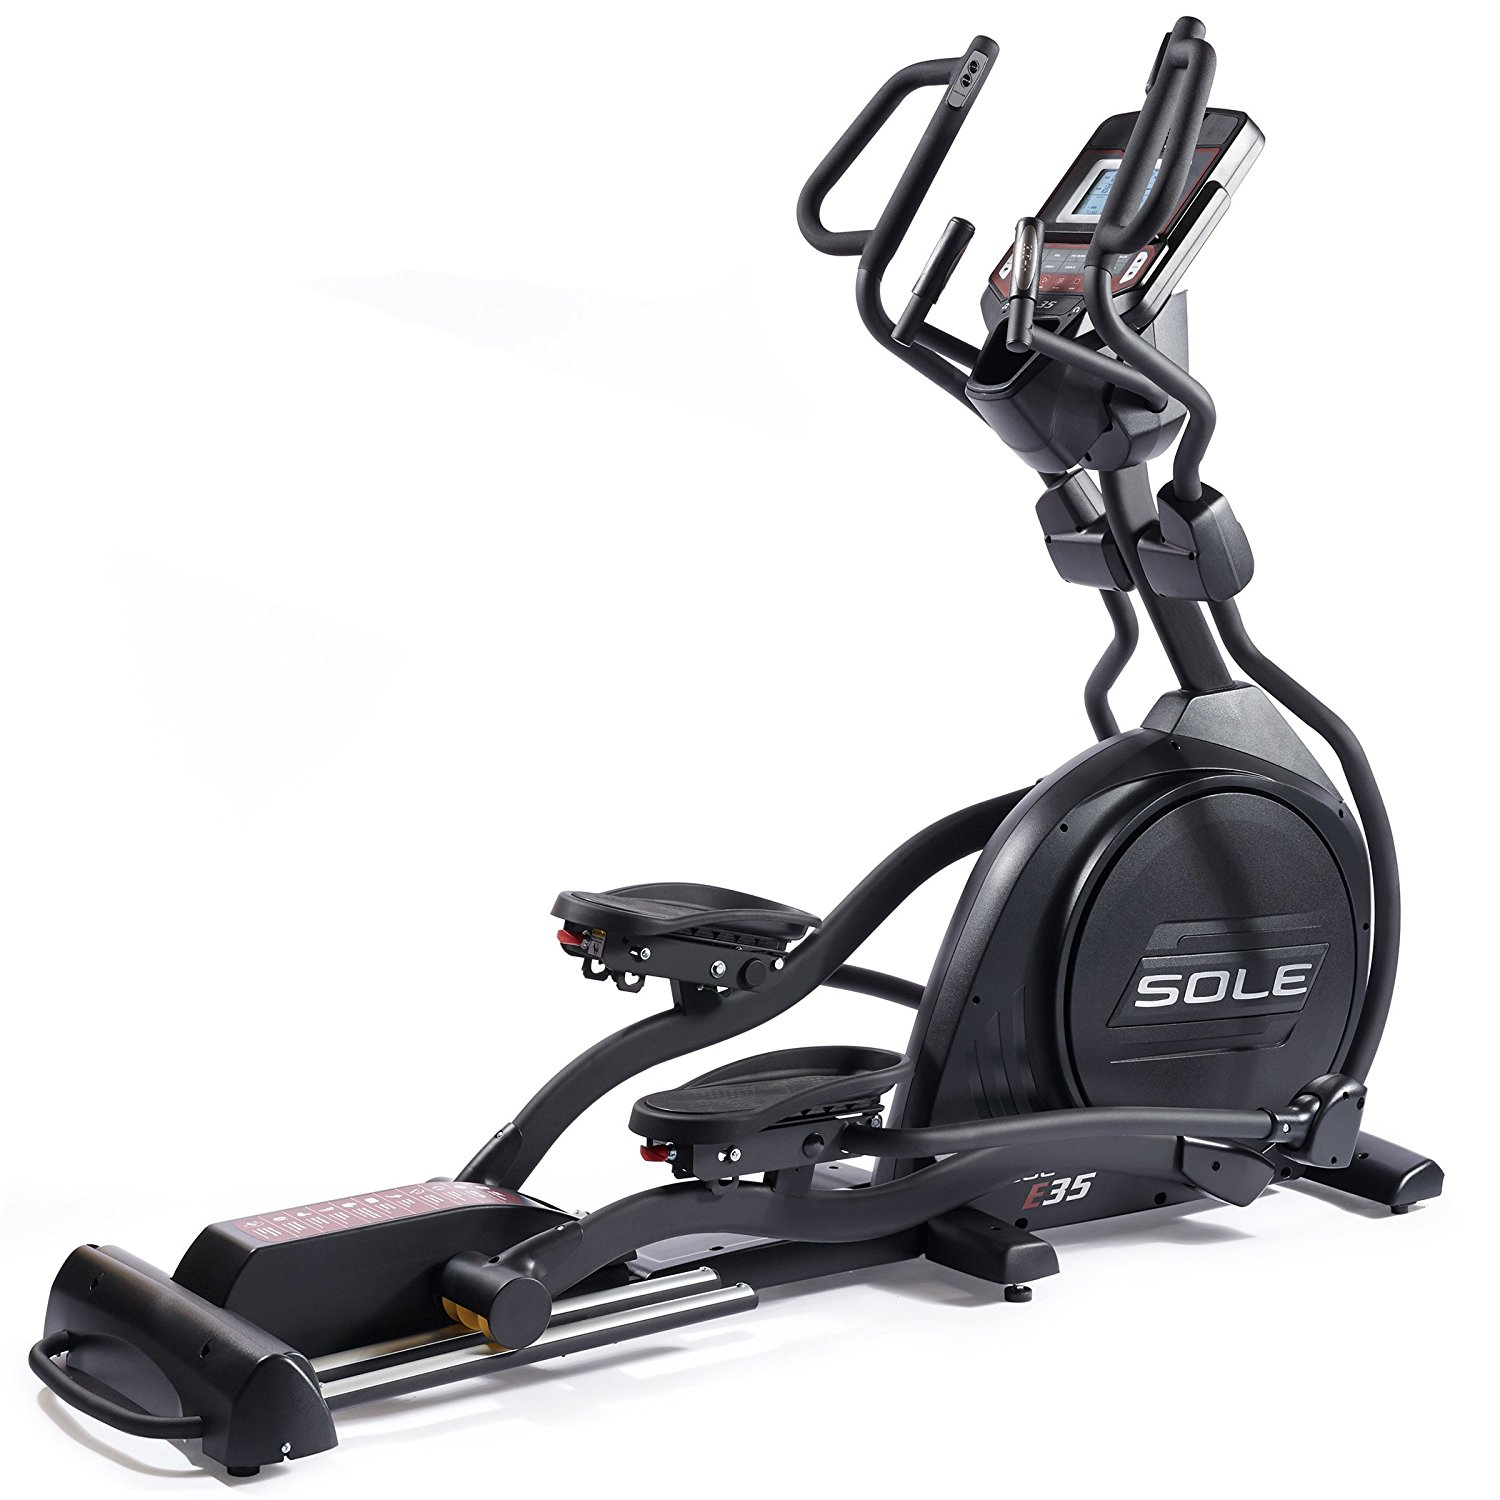 Sole E35 Elliptical Machine